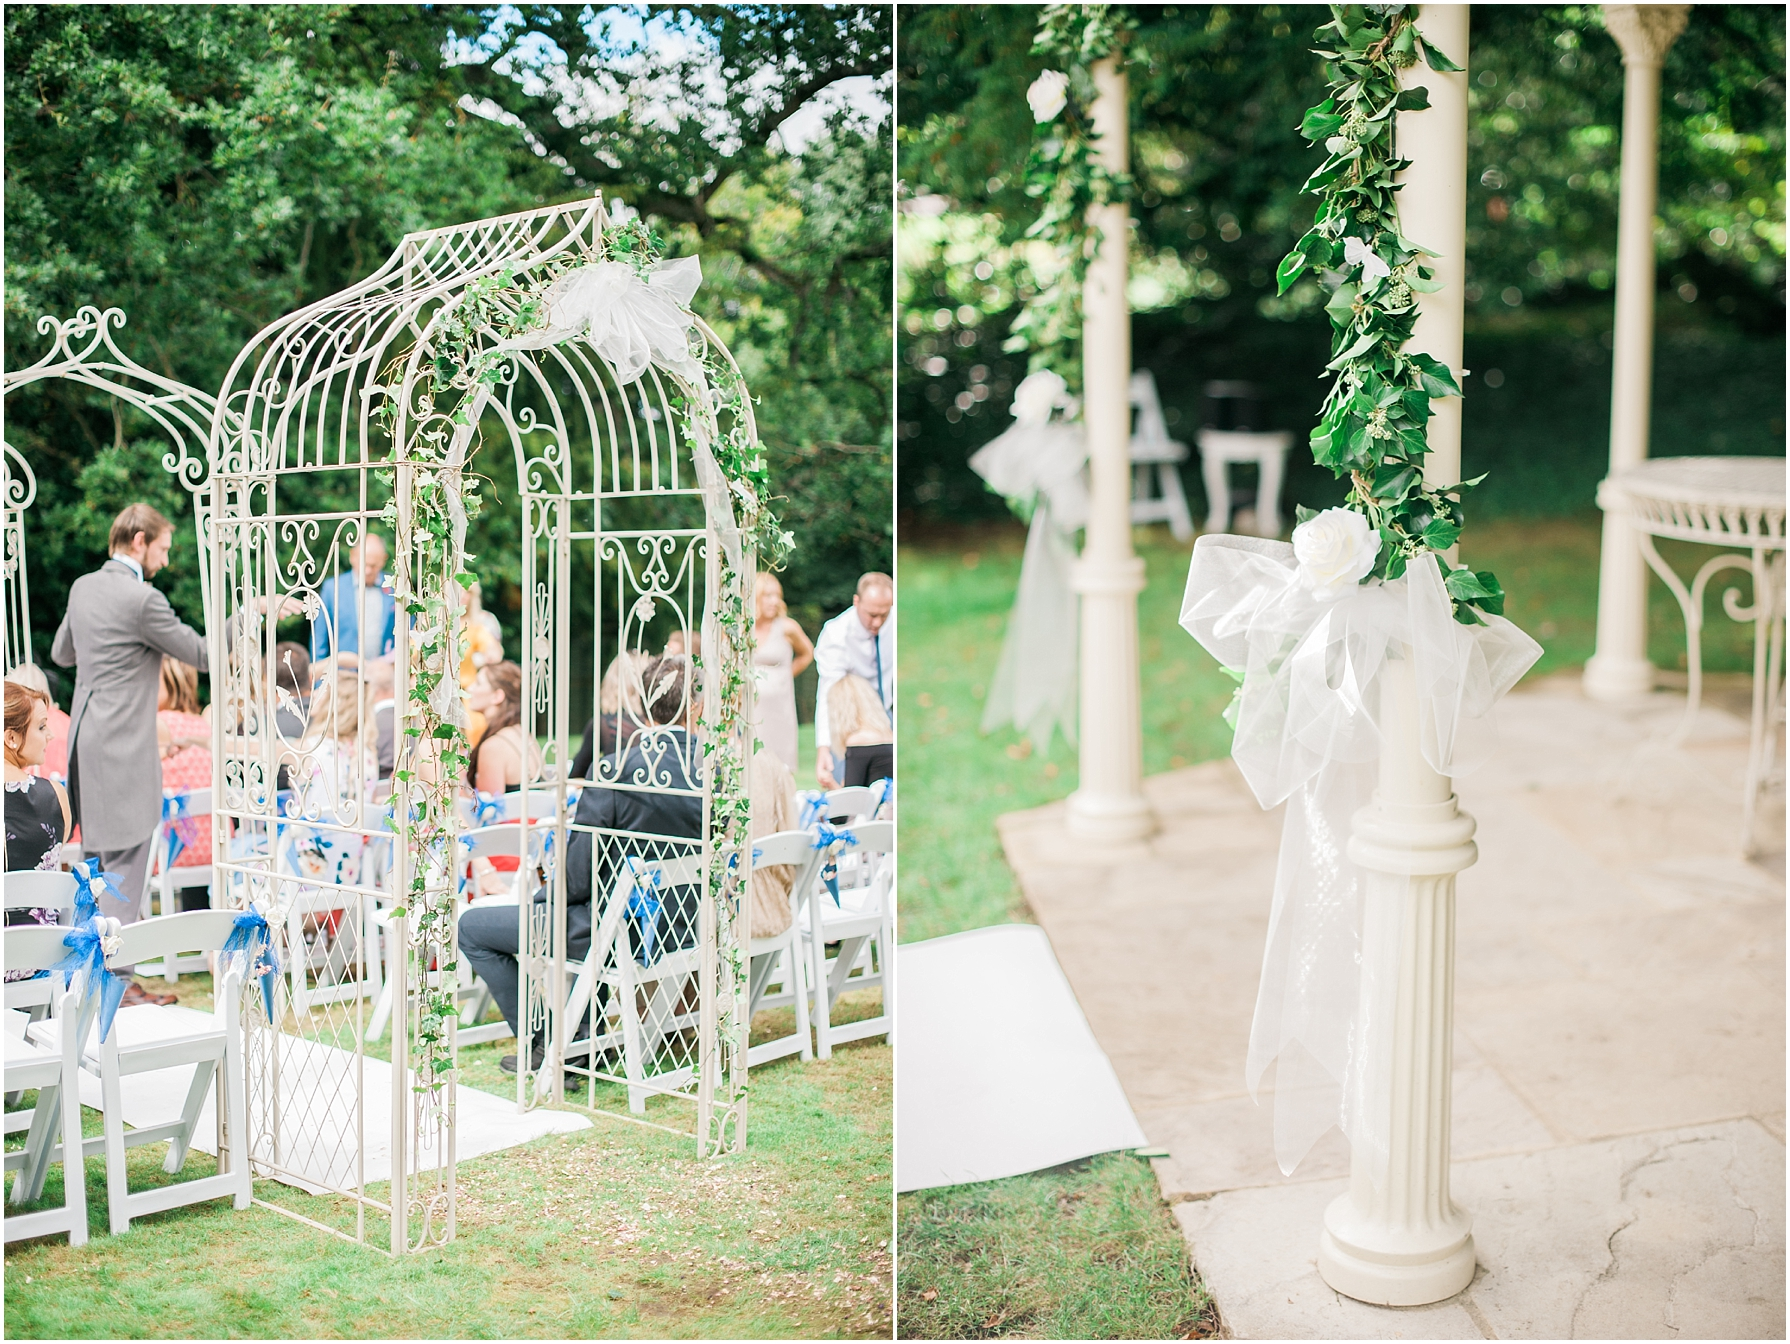 metal archway leading to wedding ceremony at manor by the lake